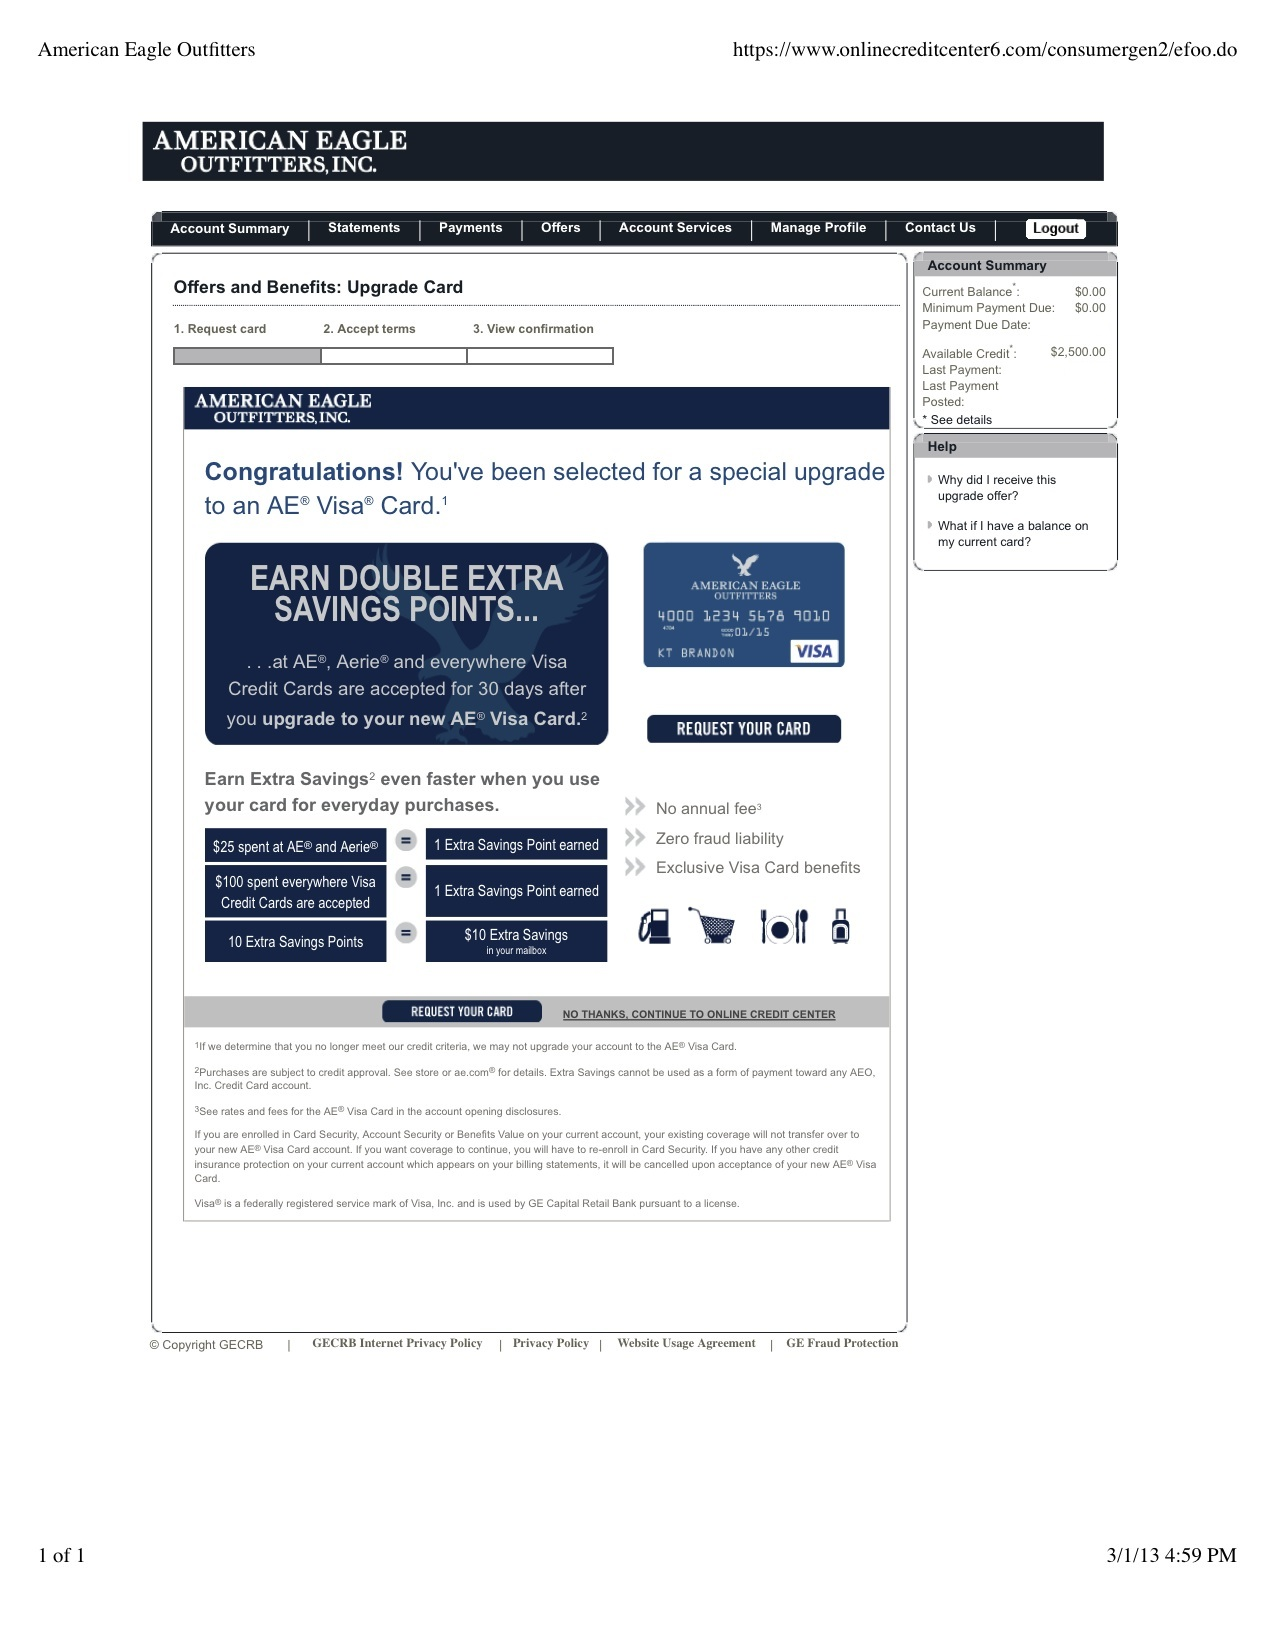 American Eagle Outfitters Visa Upgrade1.jpg